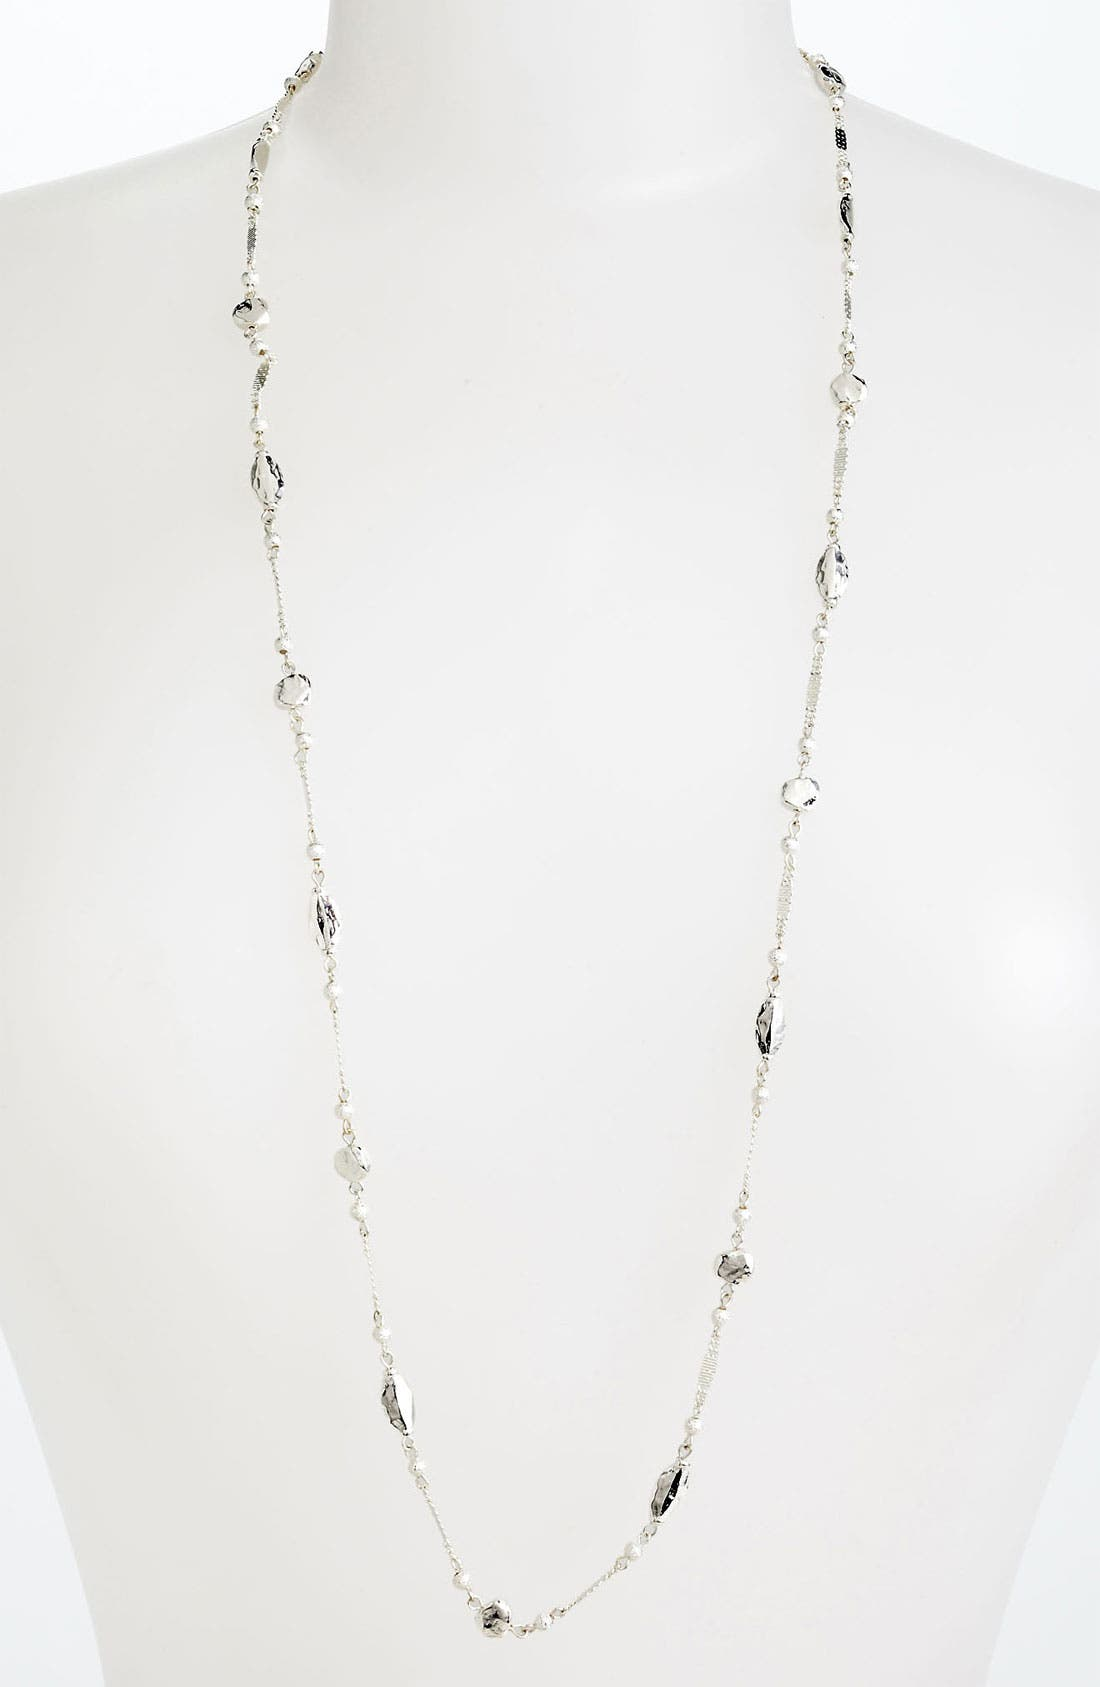 NORDSTROM 'Sand Dollar' Long Station Necklace, Main, color, 040